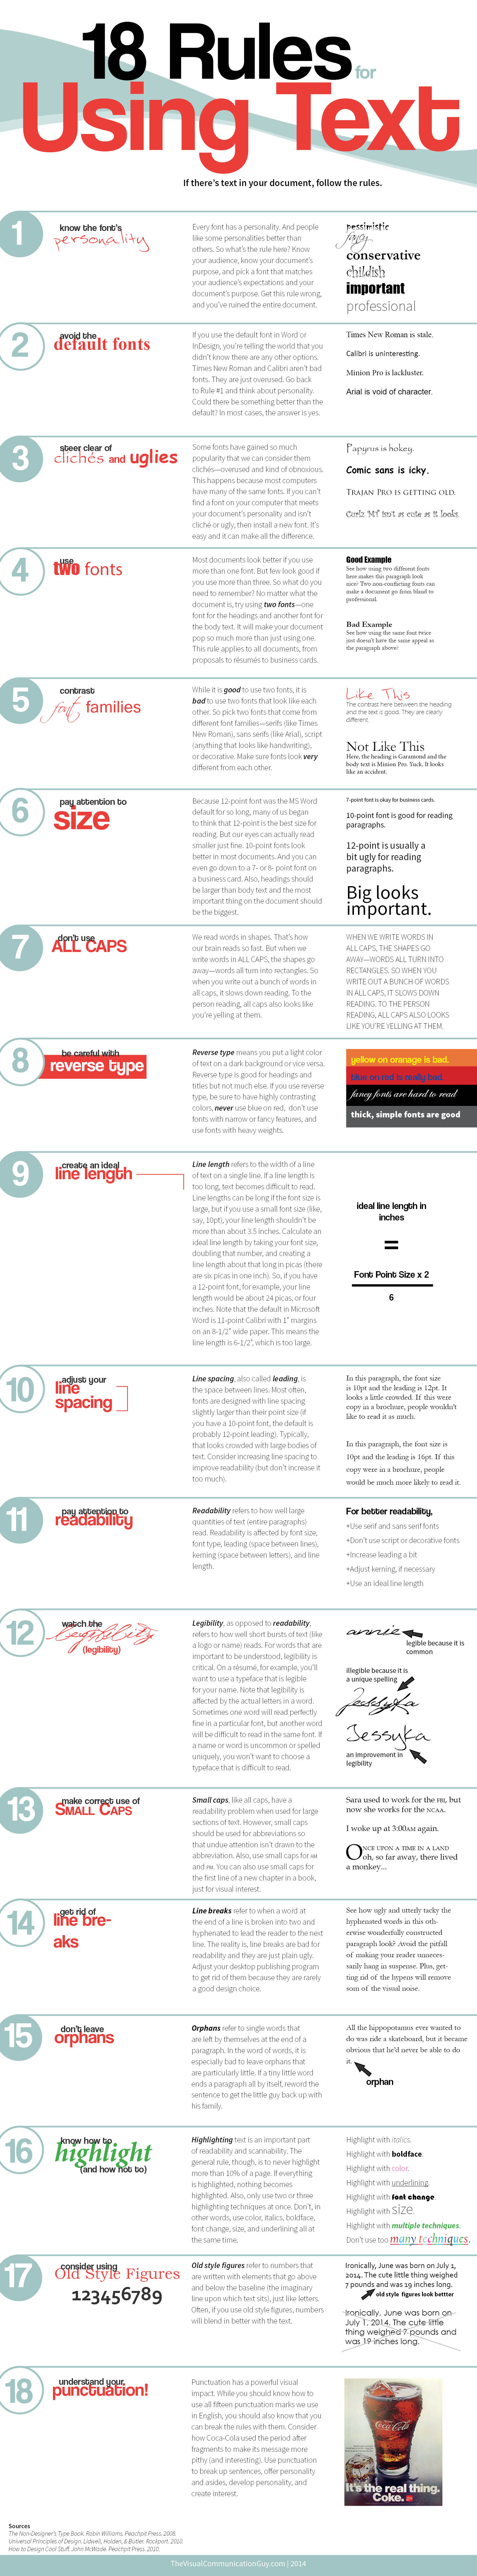 Infographic: 18 Rules for Using Text #infographic